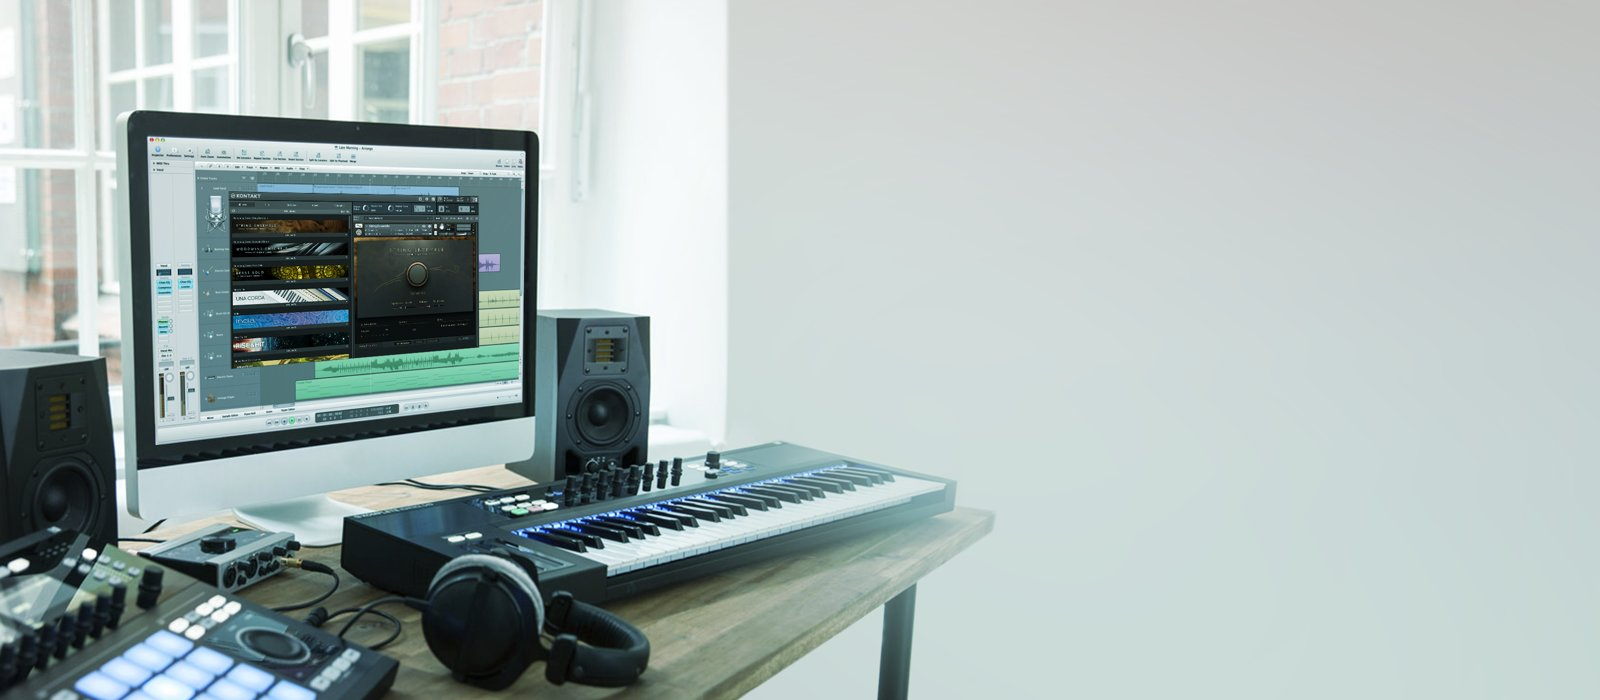 Kontakt 5 manual download - And With An Ever Growing Feature Set Kontakt Continues To Be The Sample Engine Behind The Future Of Sound